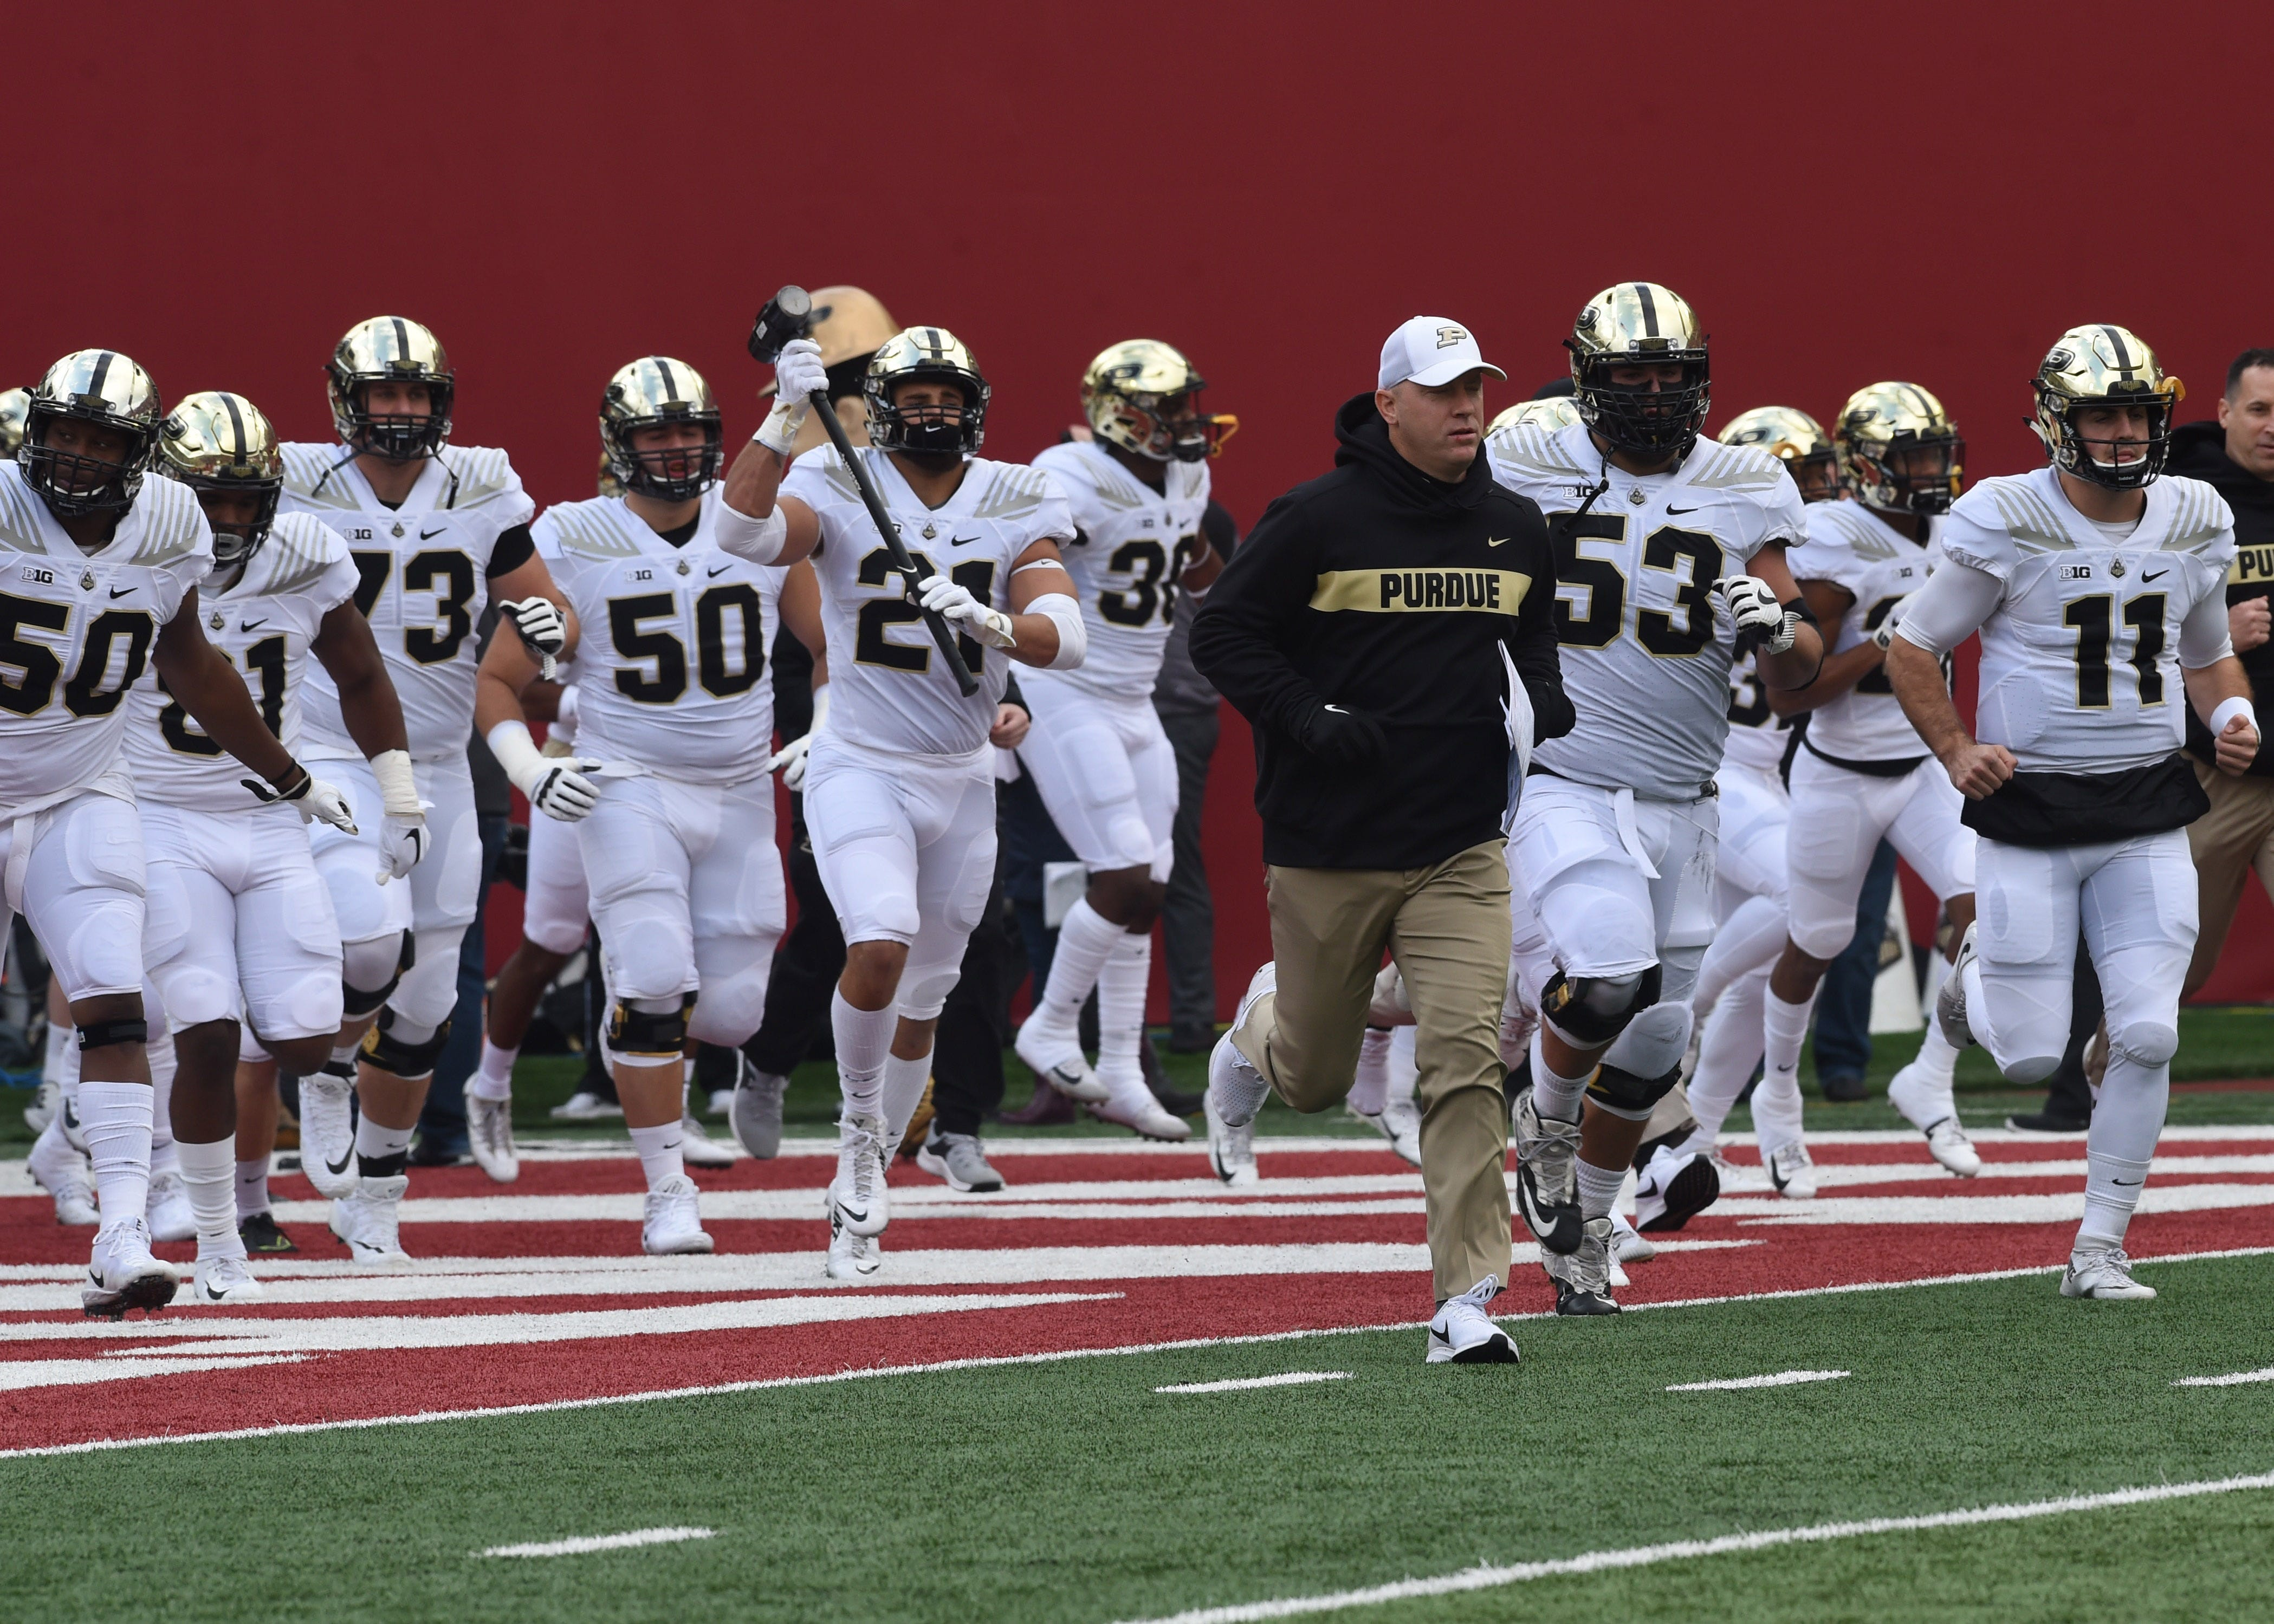 Head coach Jeff Brohm leads his Purdue football team onto the Memorial Stadium field Saturday, Nov. 24, 2018.